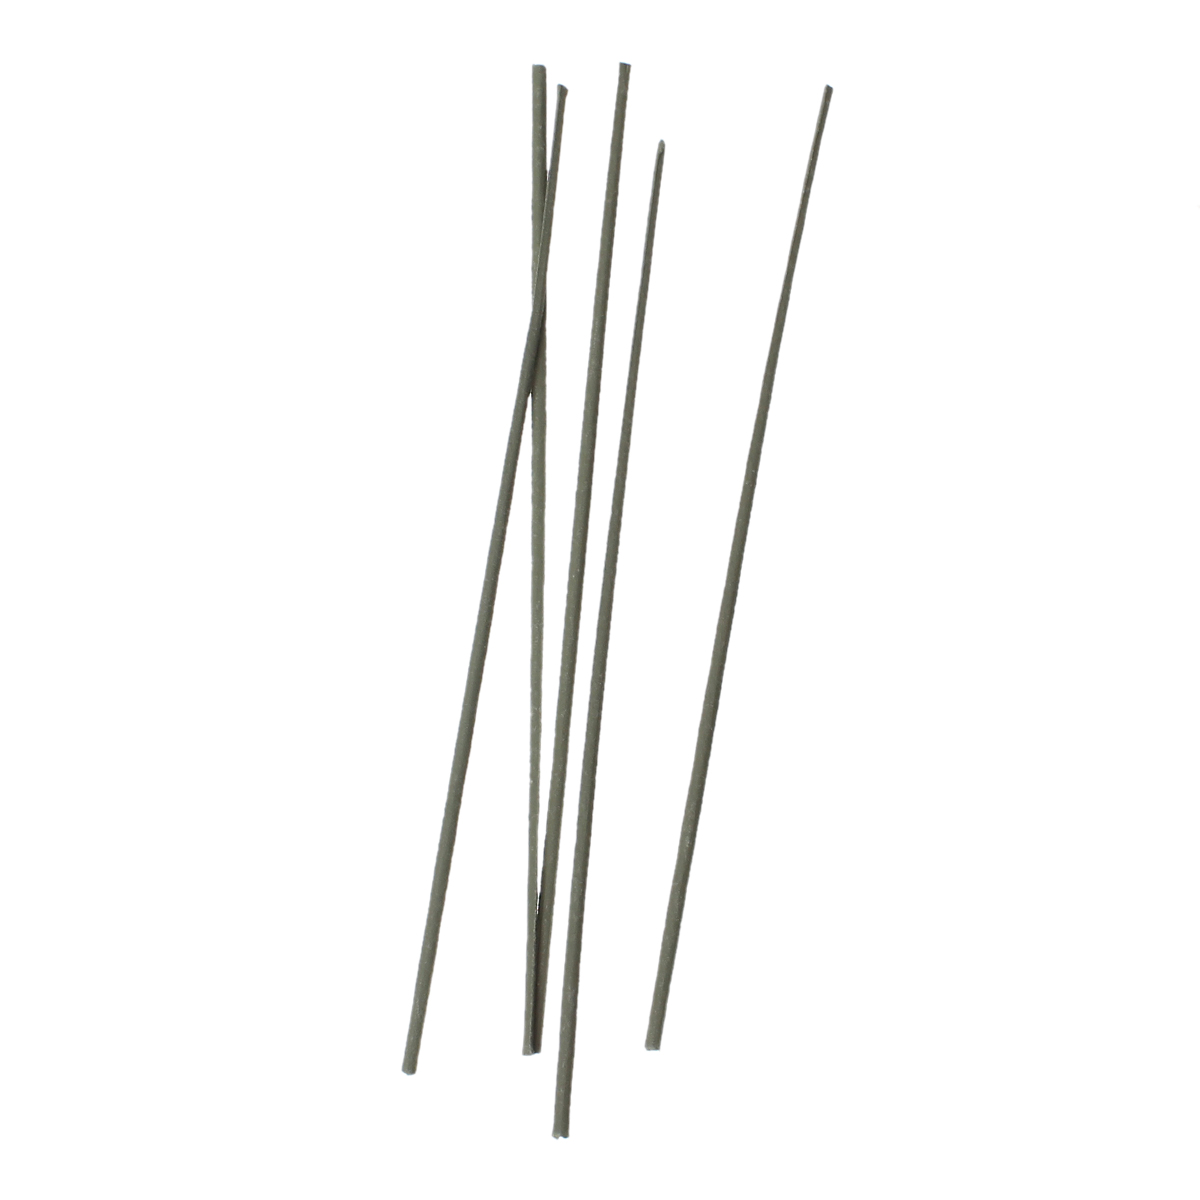 Wedding Supplies Wire Stick Pin For Flower Corsage Making DIY Craft Round Army Green 14.4cm x 25.0mm,100 PCs 2016 new(China (Mainland))